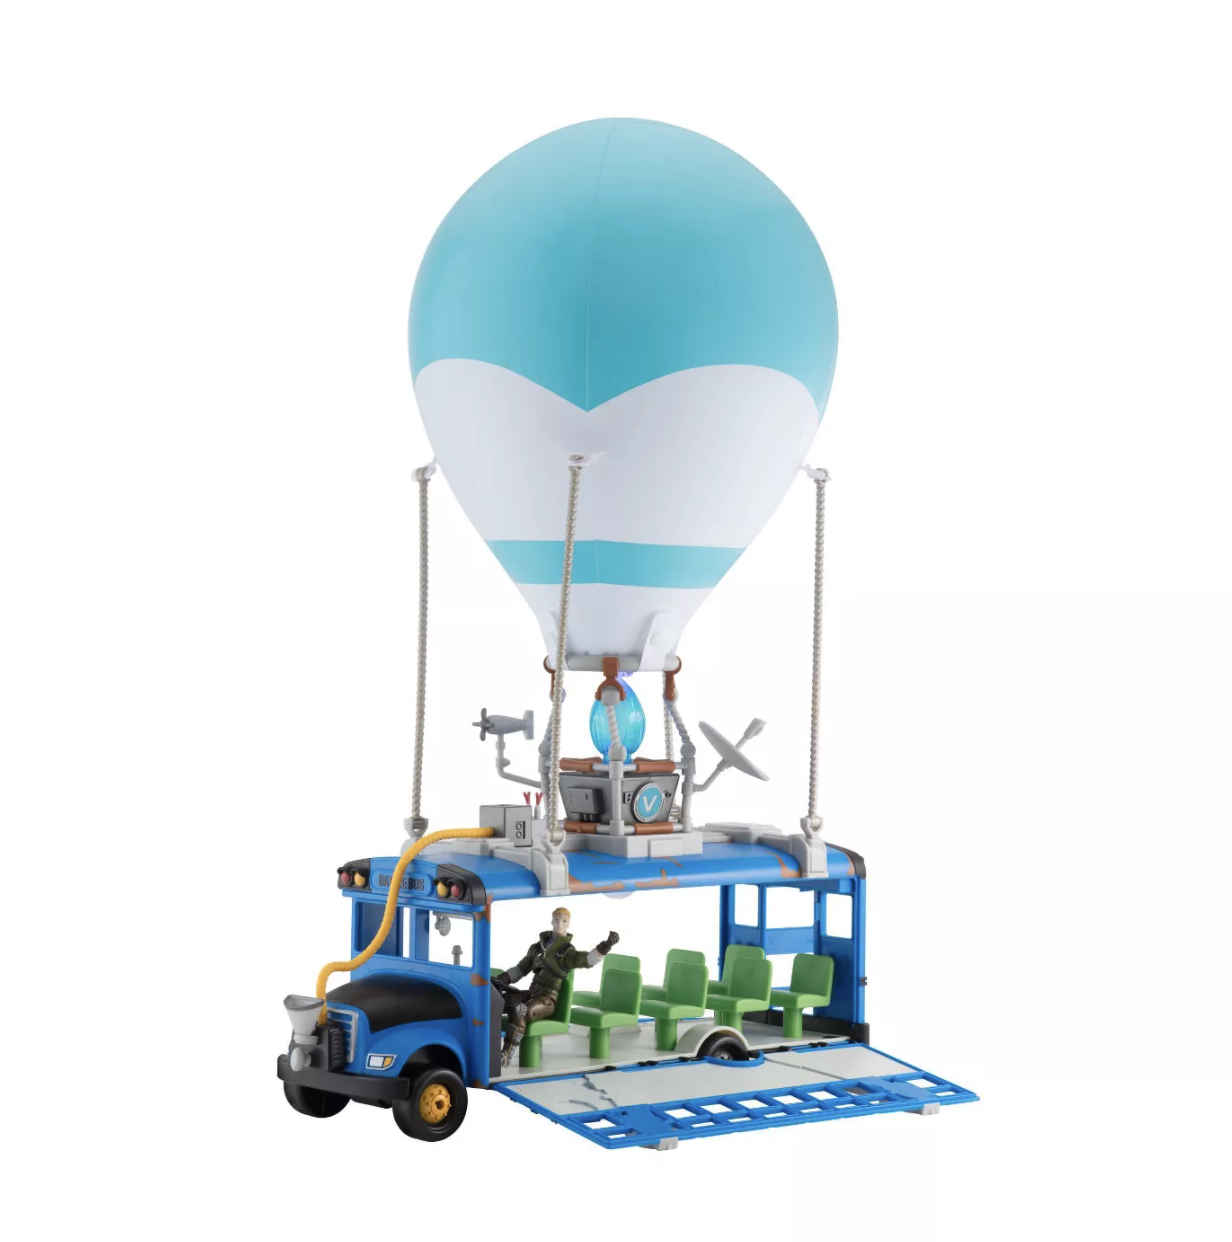 The Fortnite Battle Bus Deluxe Vehicle opened to reveal interior and action figure